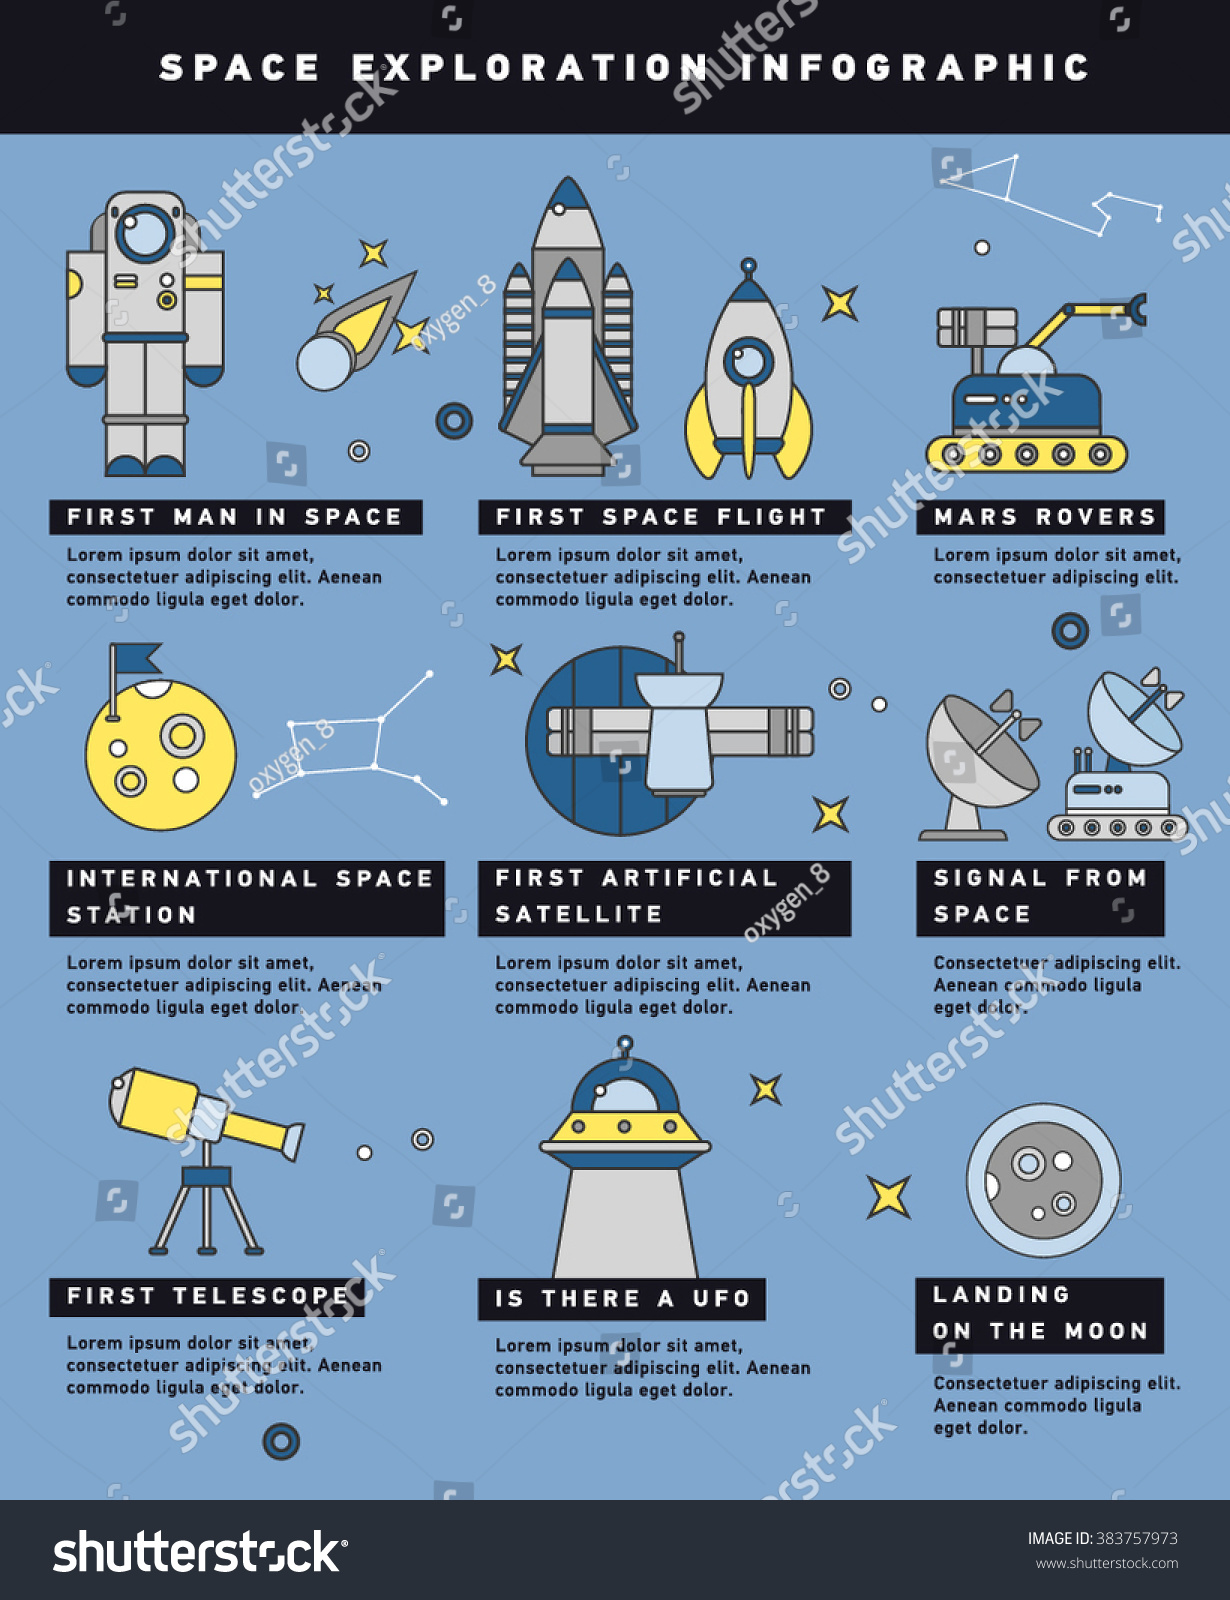 Space Exploration Timeline Infographic Layout Poster Stock Vector ...